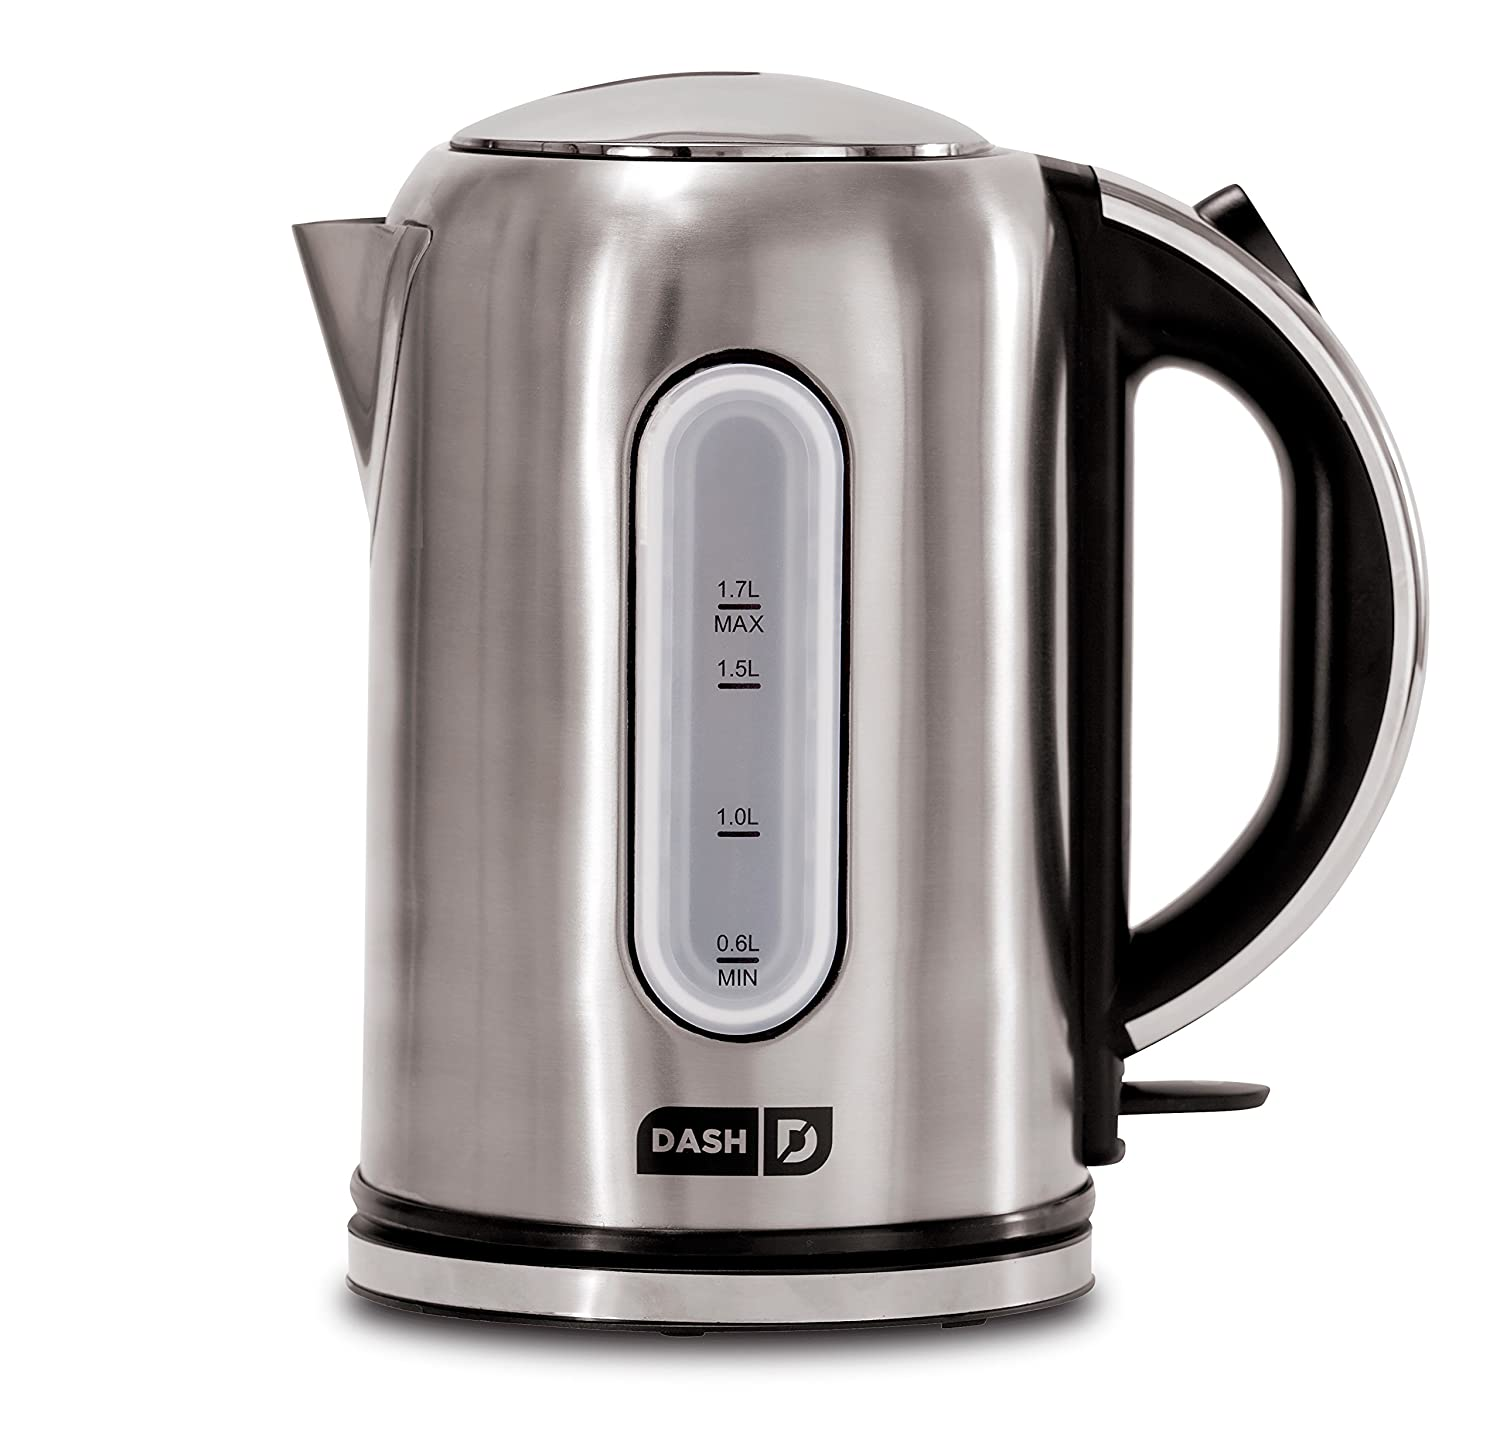 Espresso /& More 57 oz // 1.7 L Stainless No Drip Spout Cordless Carafe Auto Shut off for Coffee Cool Touch Handle Dash DEK001SS Electric Kettle Water Heater with Rapid Boil Tea